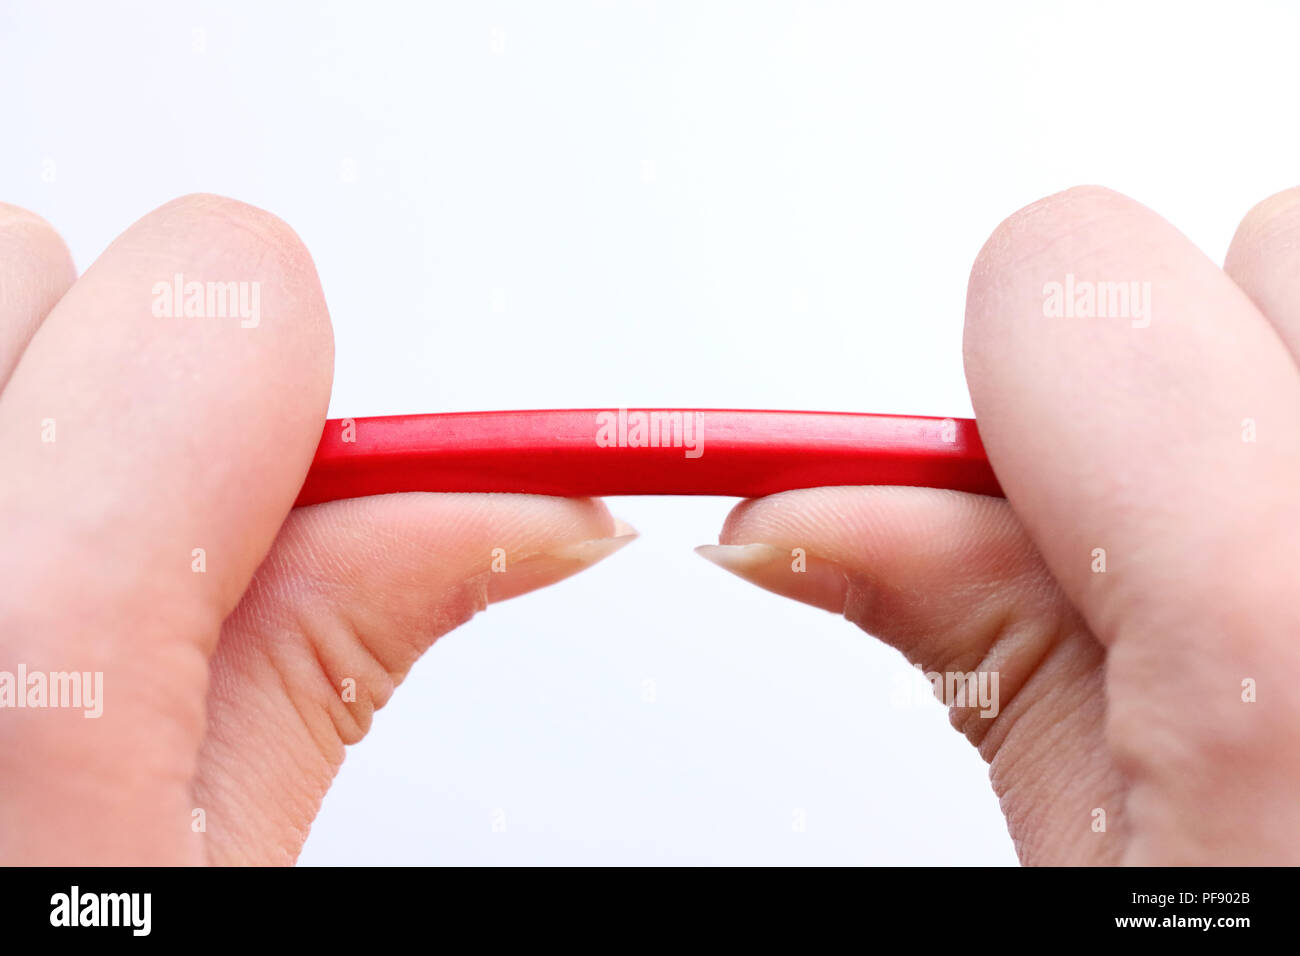 two hands holding a red pencil about to snap under the pressure. Concept of stress, anger management, pressure in the work place, parenting and breakd - Stock Image